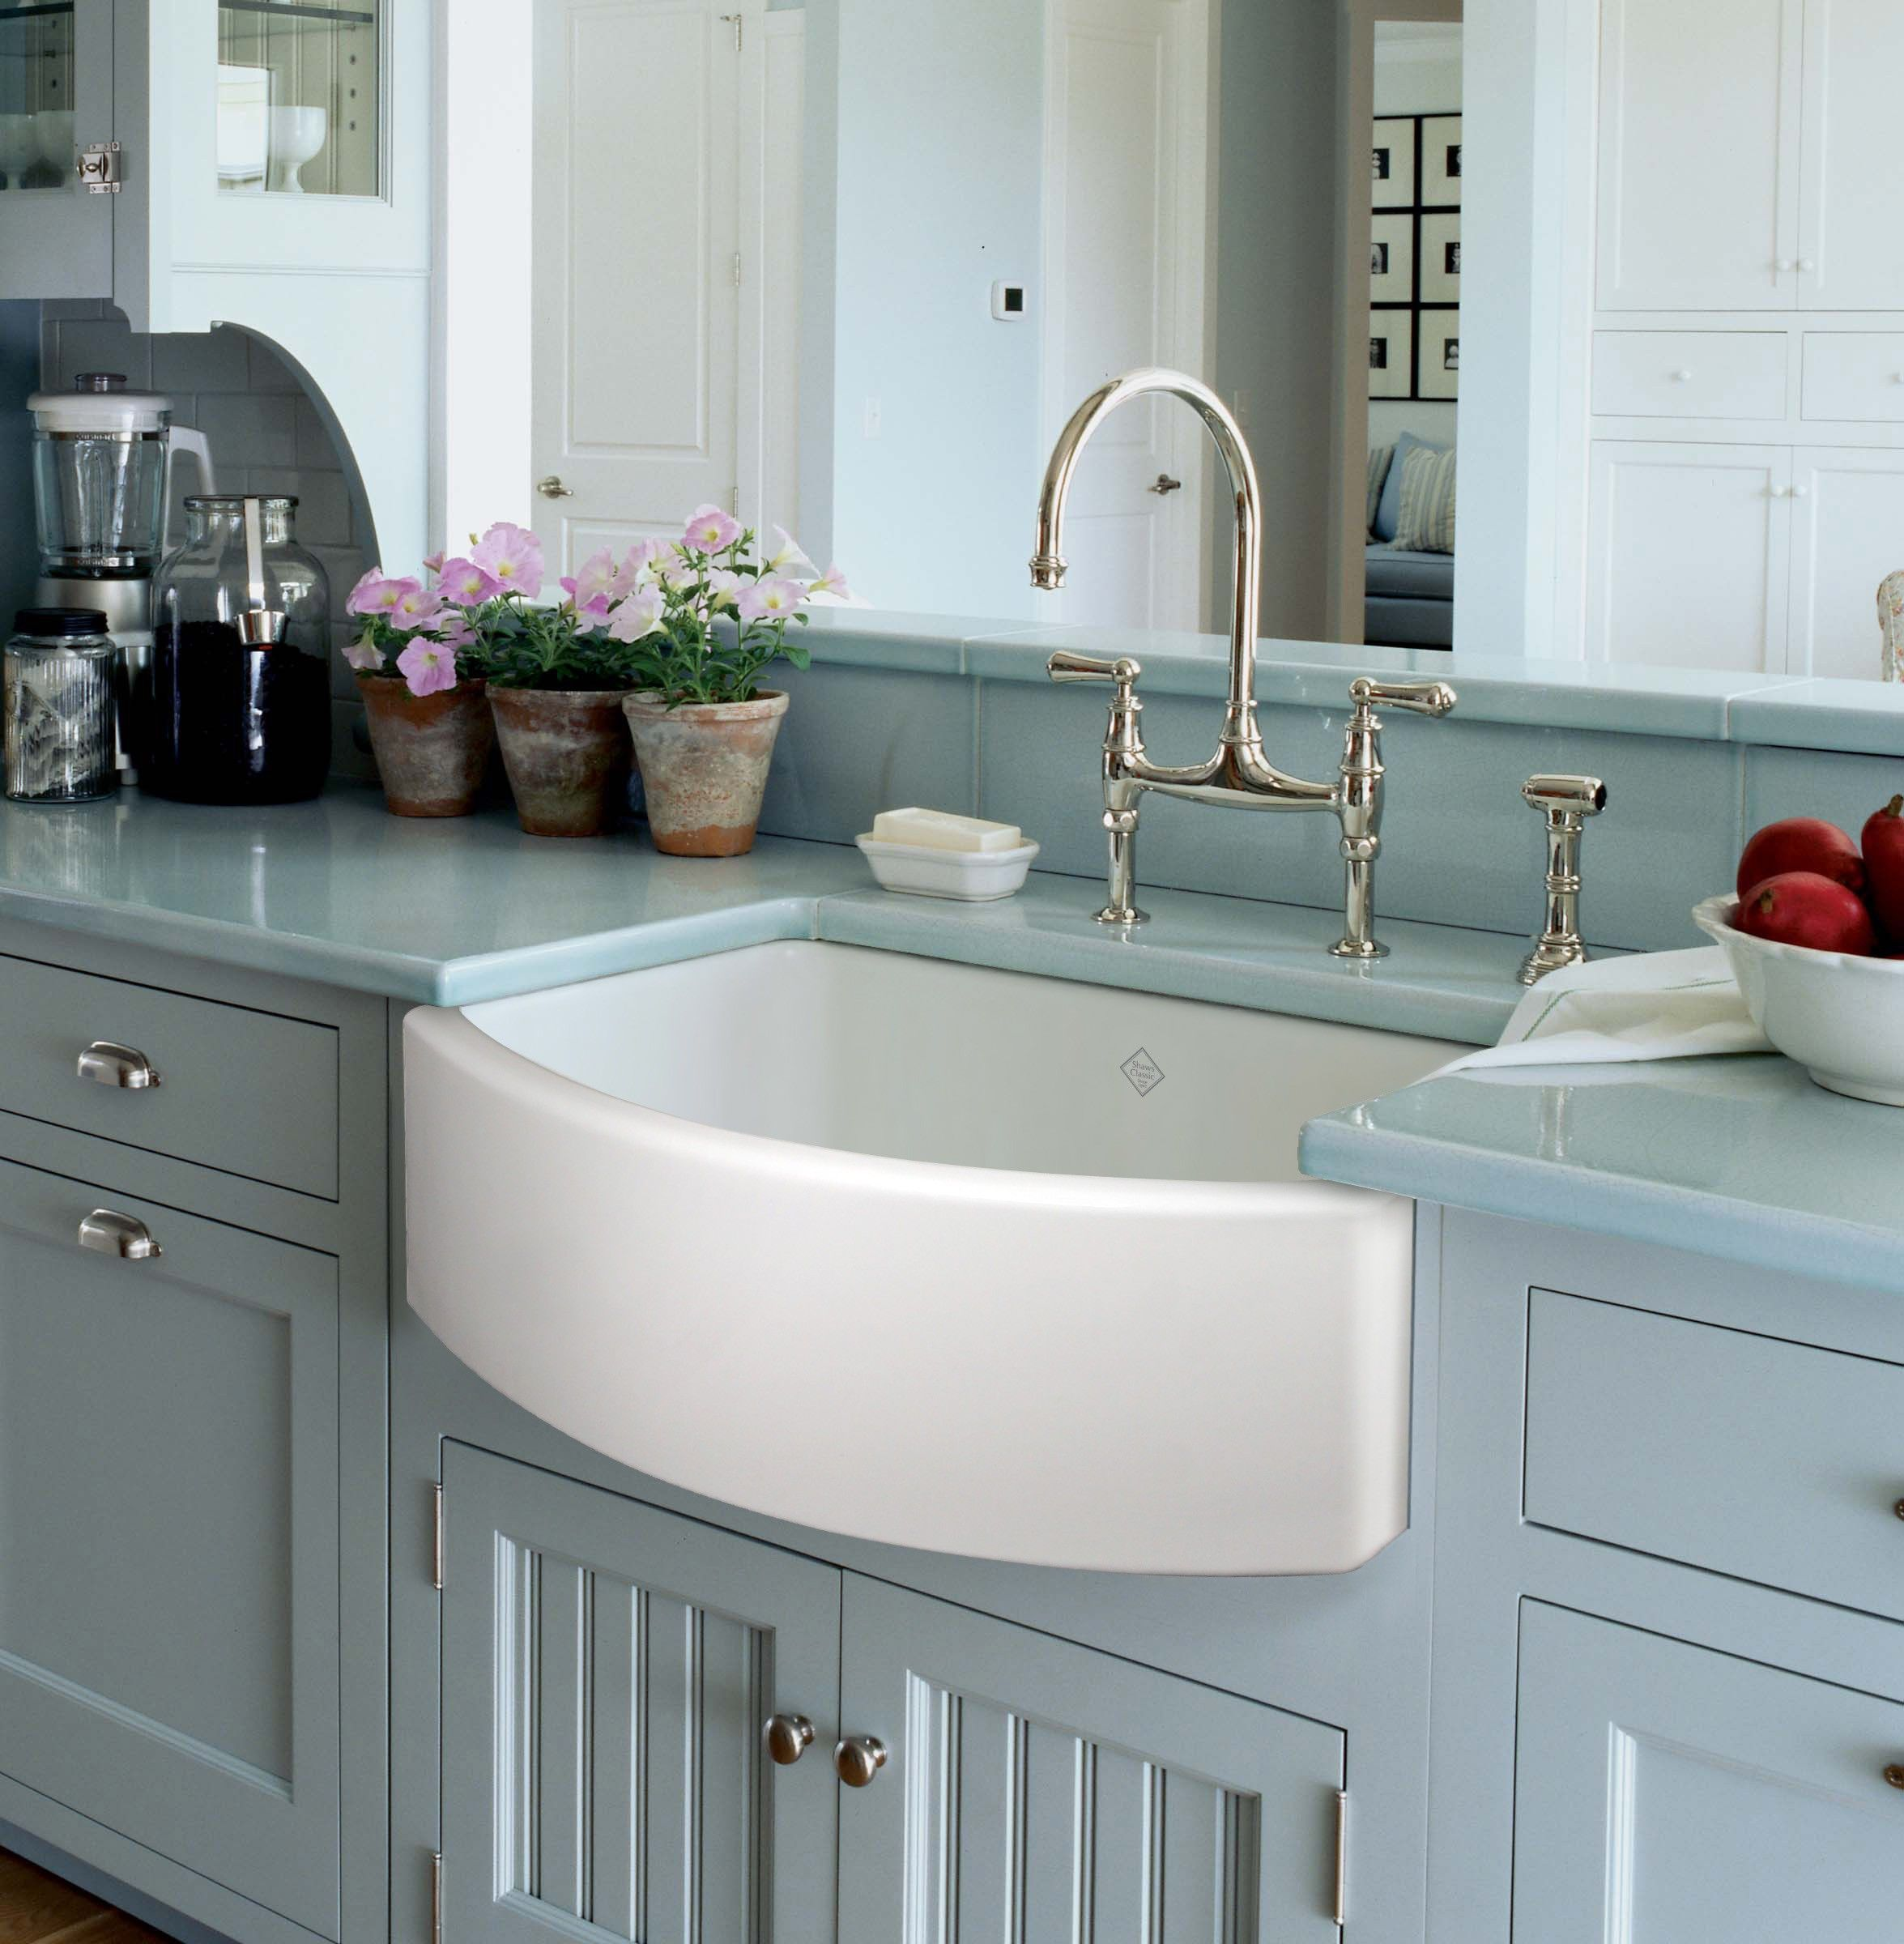 Light Blue Wooden Kitchen Cabinet Decor With Curved White Tone Apron ...